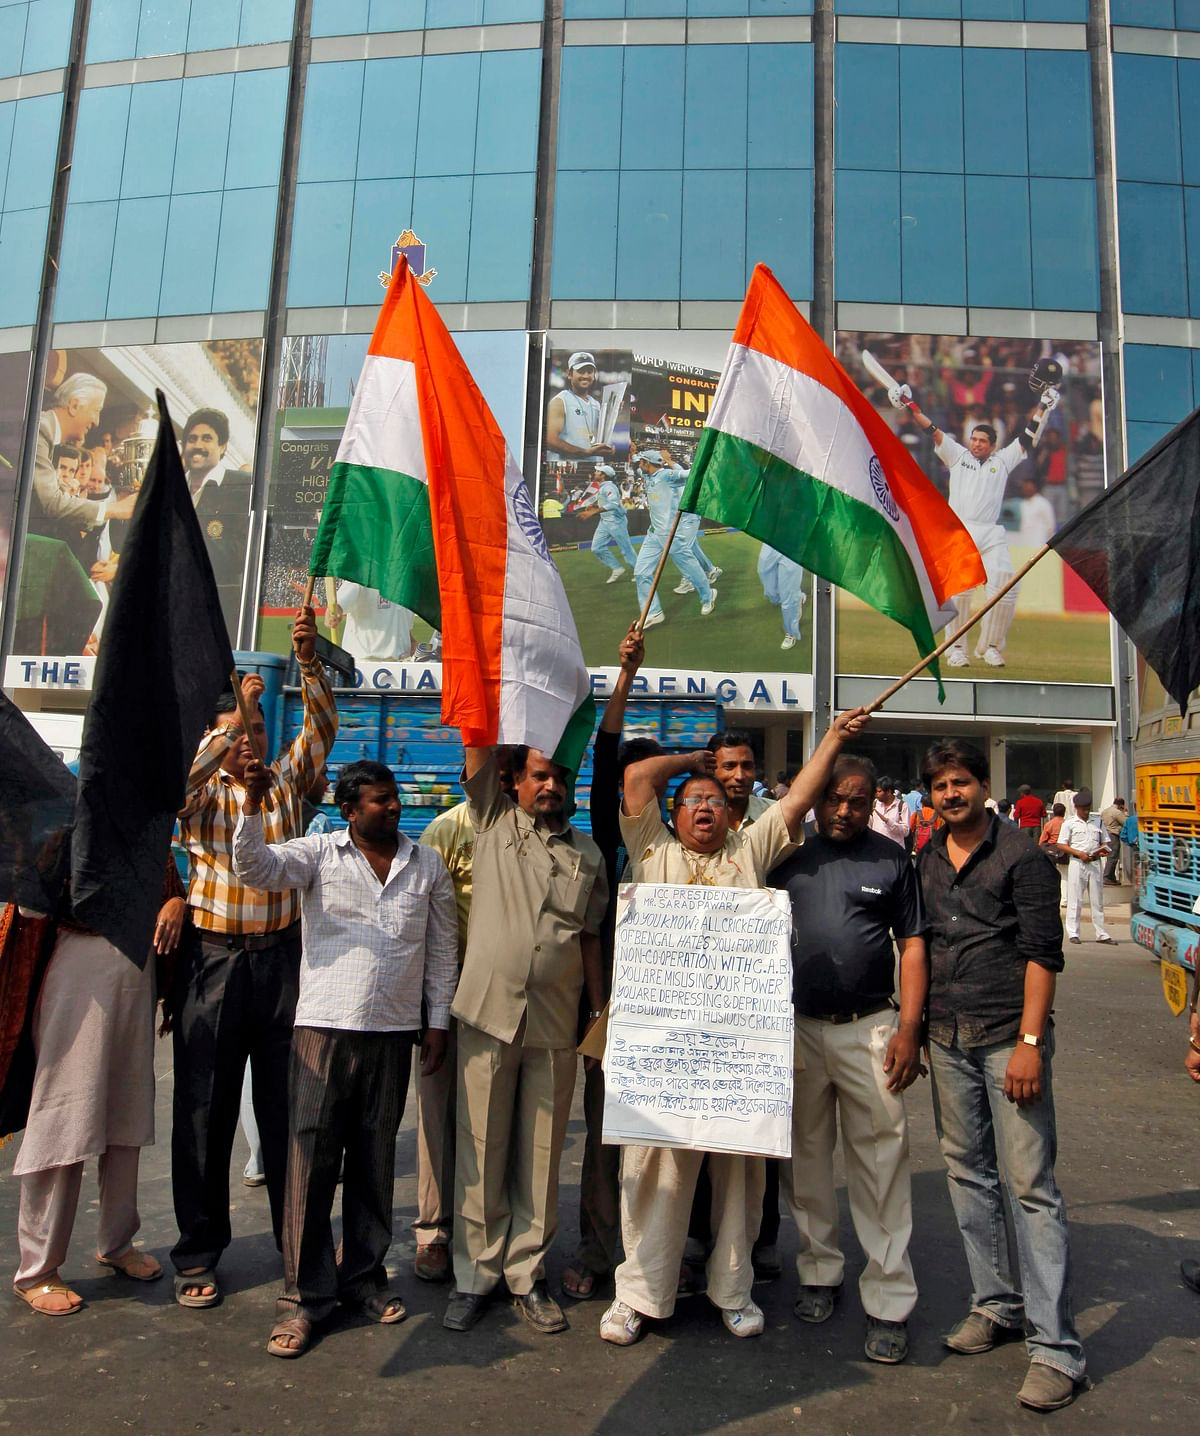 People protest outside the Eden Gardens ahead of the 2011 World Cup. (Photo: Reuters)